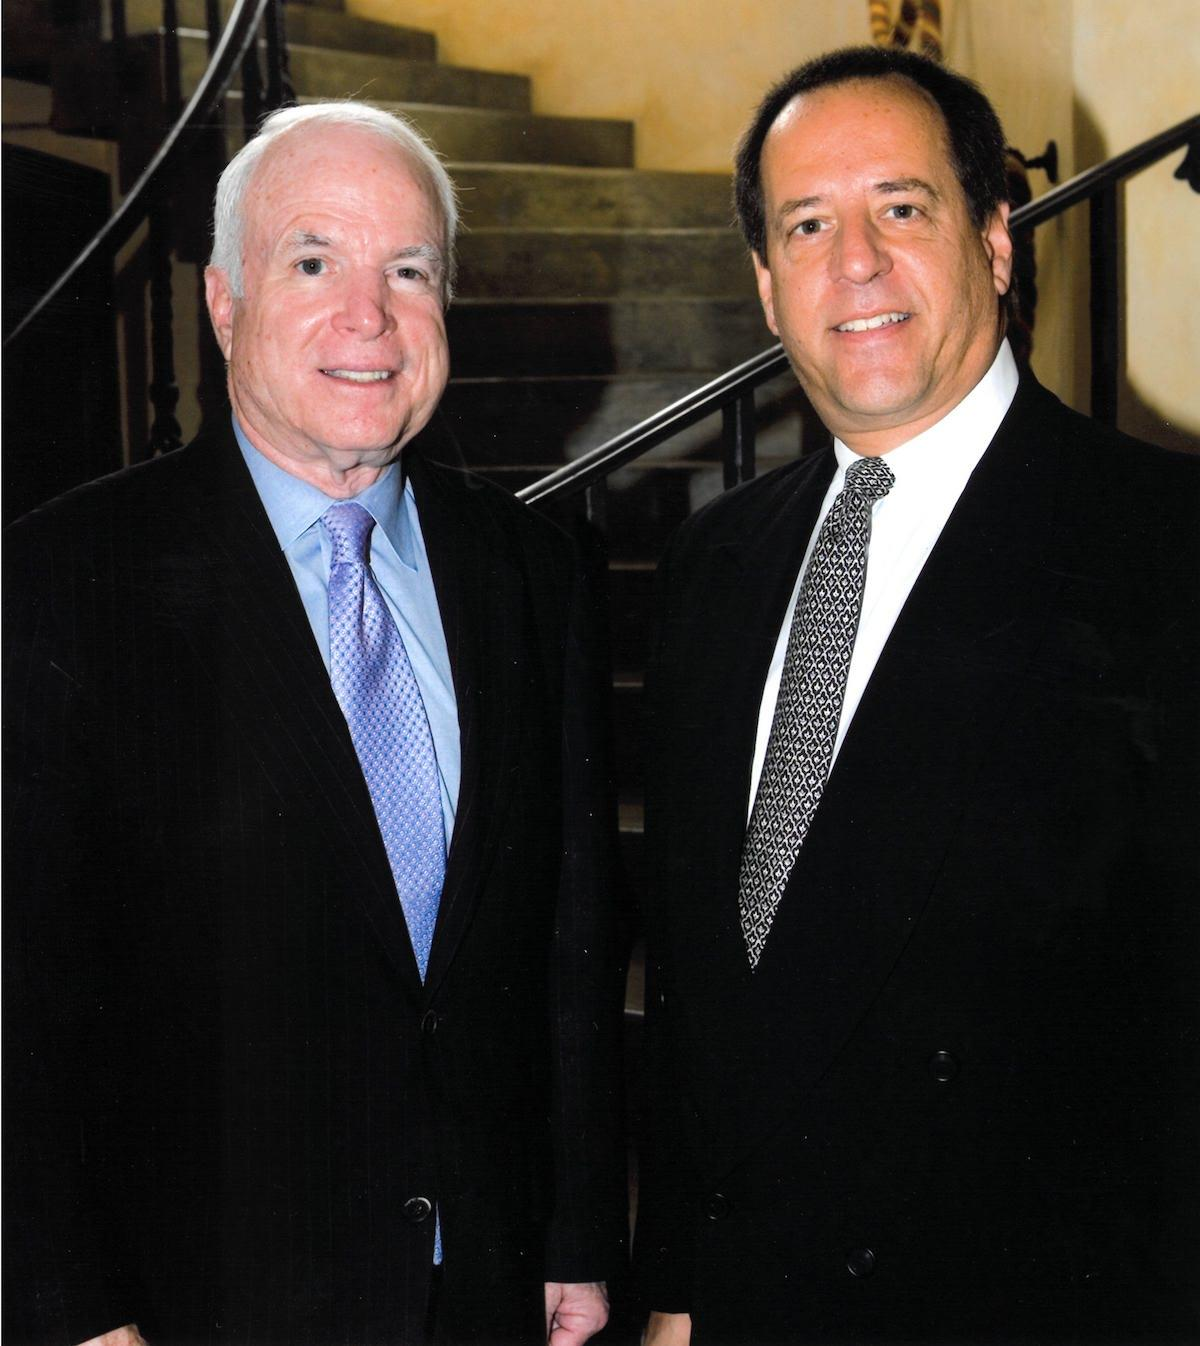 Quenzel Marketing Agency Partner, Earl Quenzel & Senator John McCain.